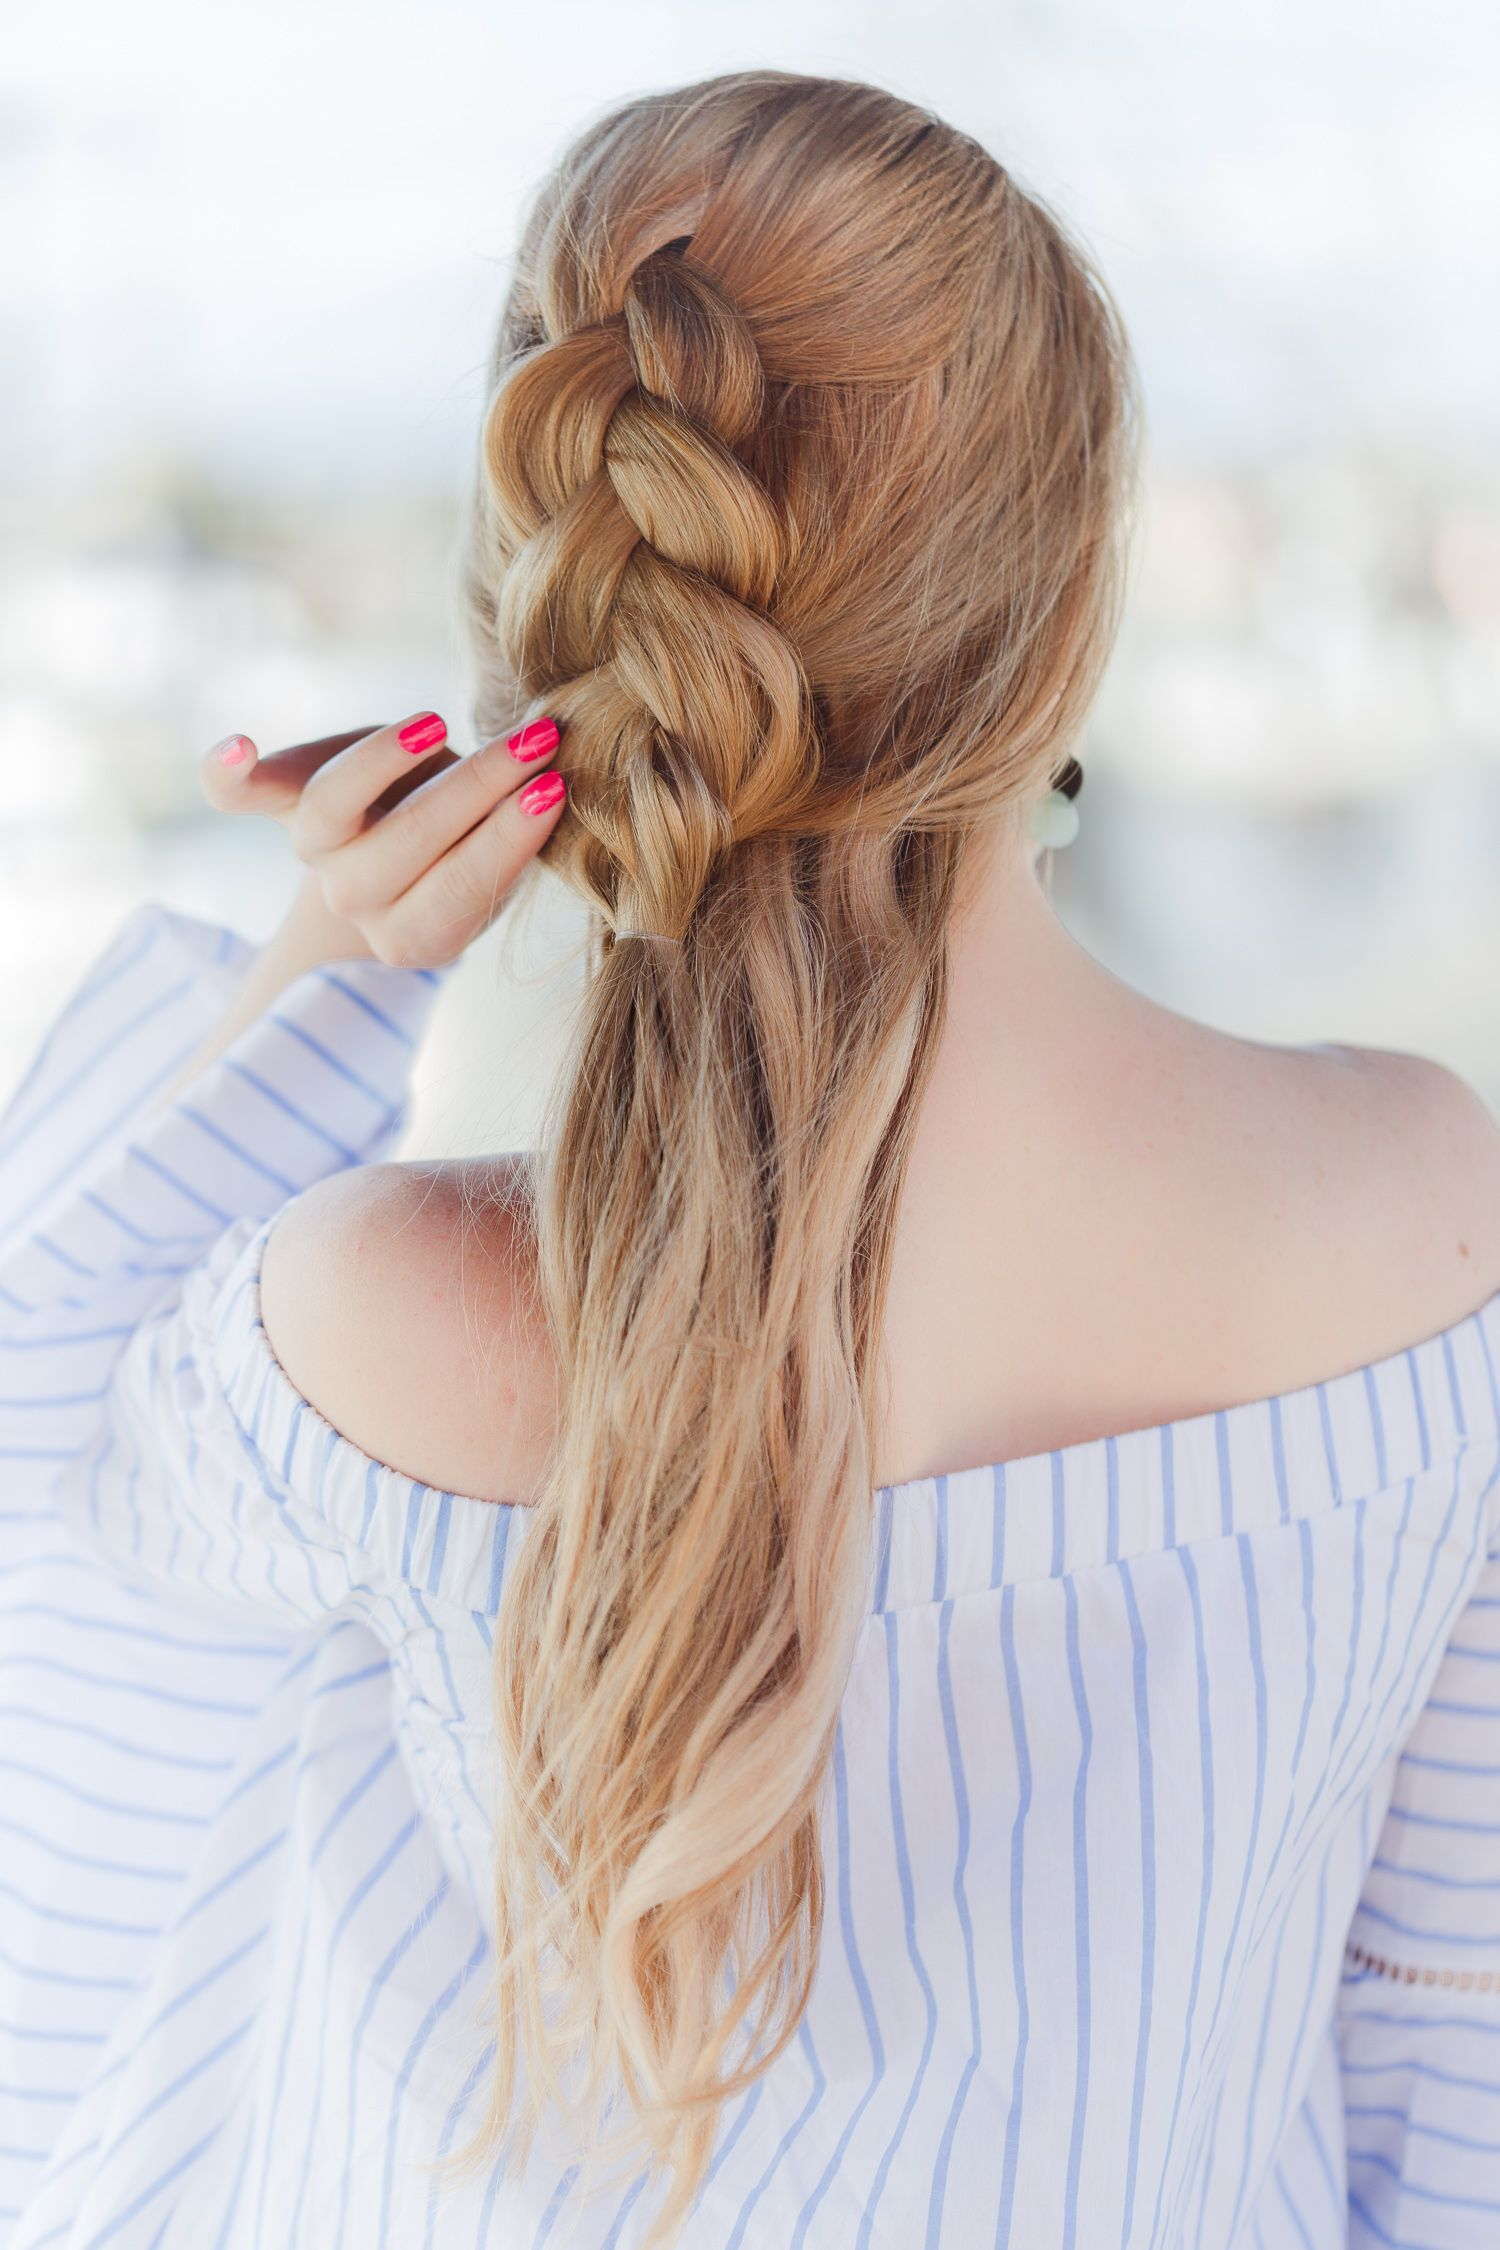 Beach Hairstyles Glamorous Half Up Dutch Braid Hairstyle And Beach Walk  Design Every Day